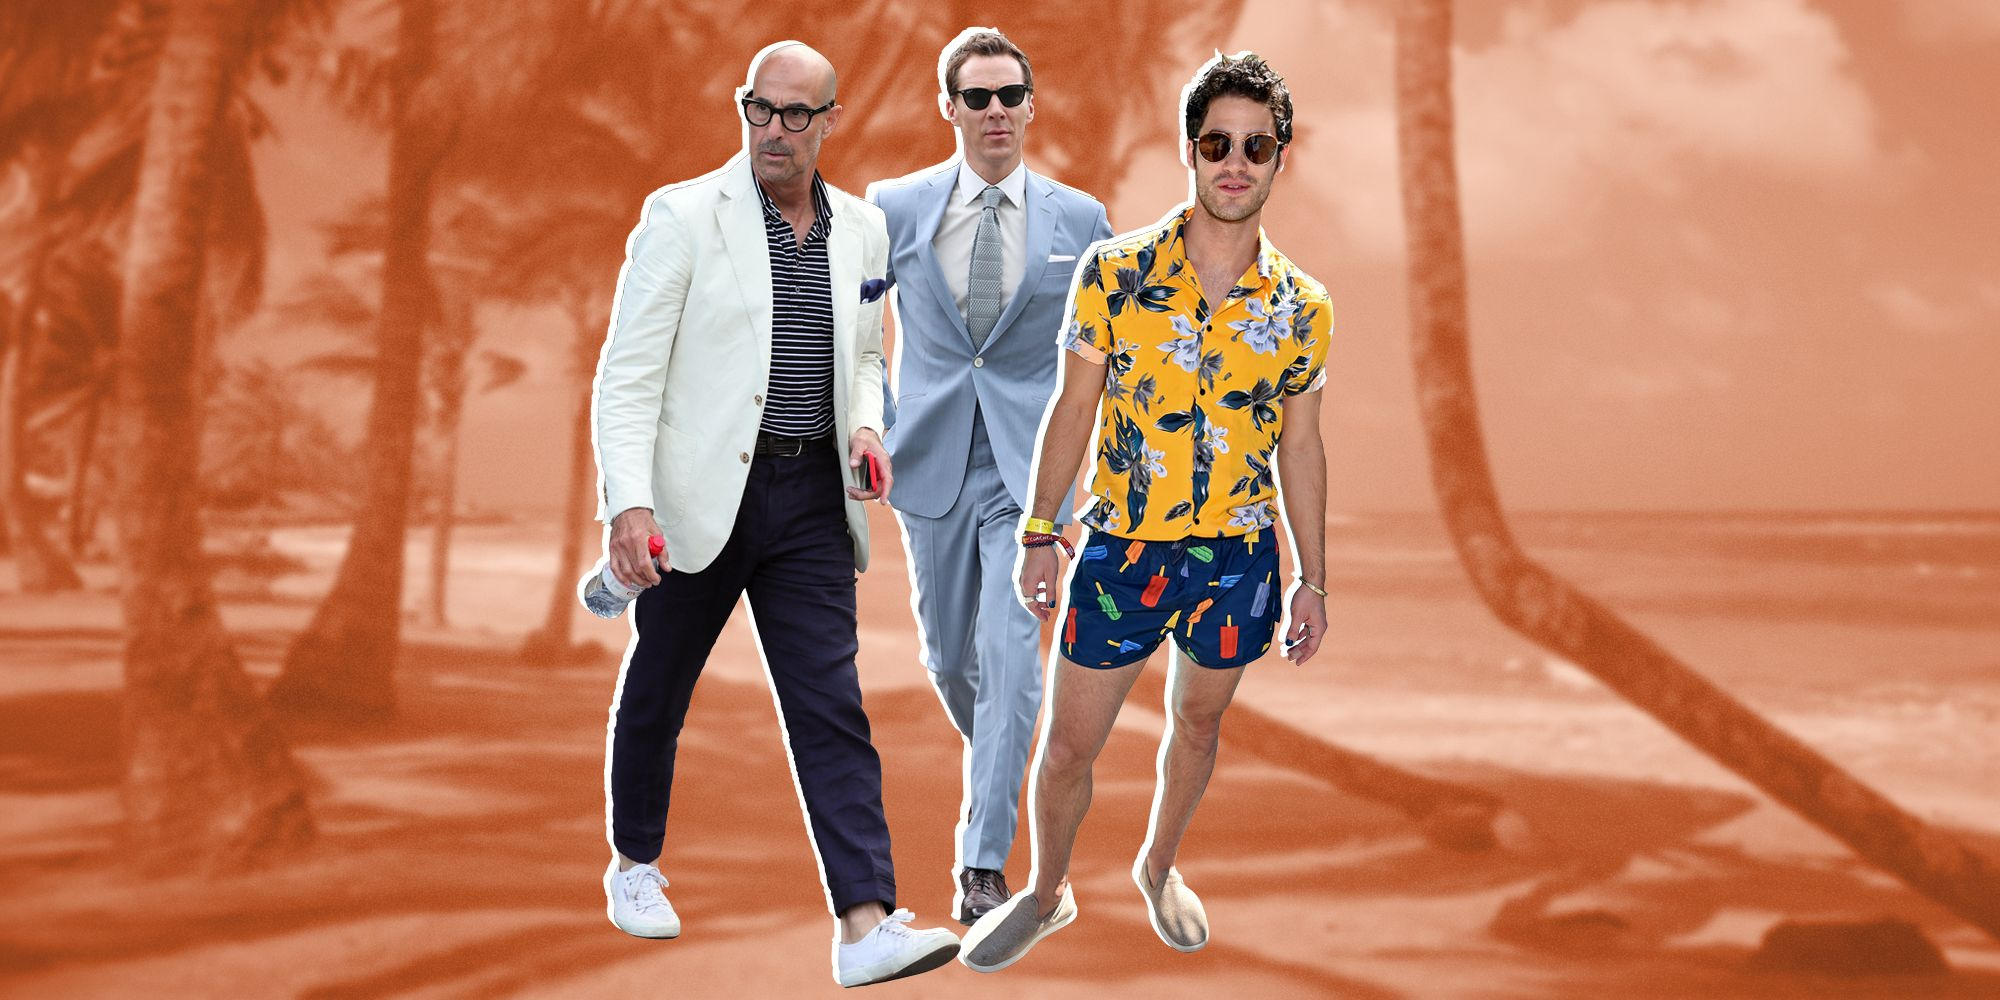 6 Best Summer Outfits For Men 2020 Stylish Summer Pieces For Every Occassion